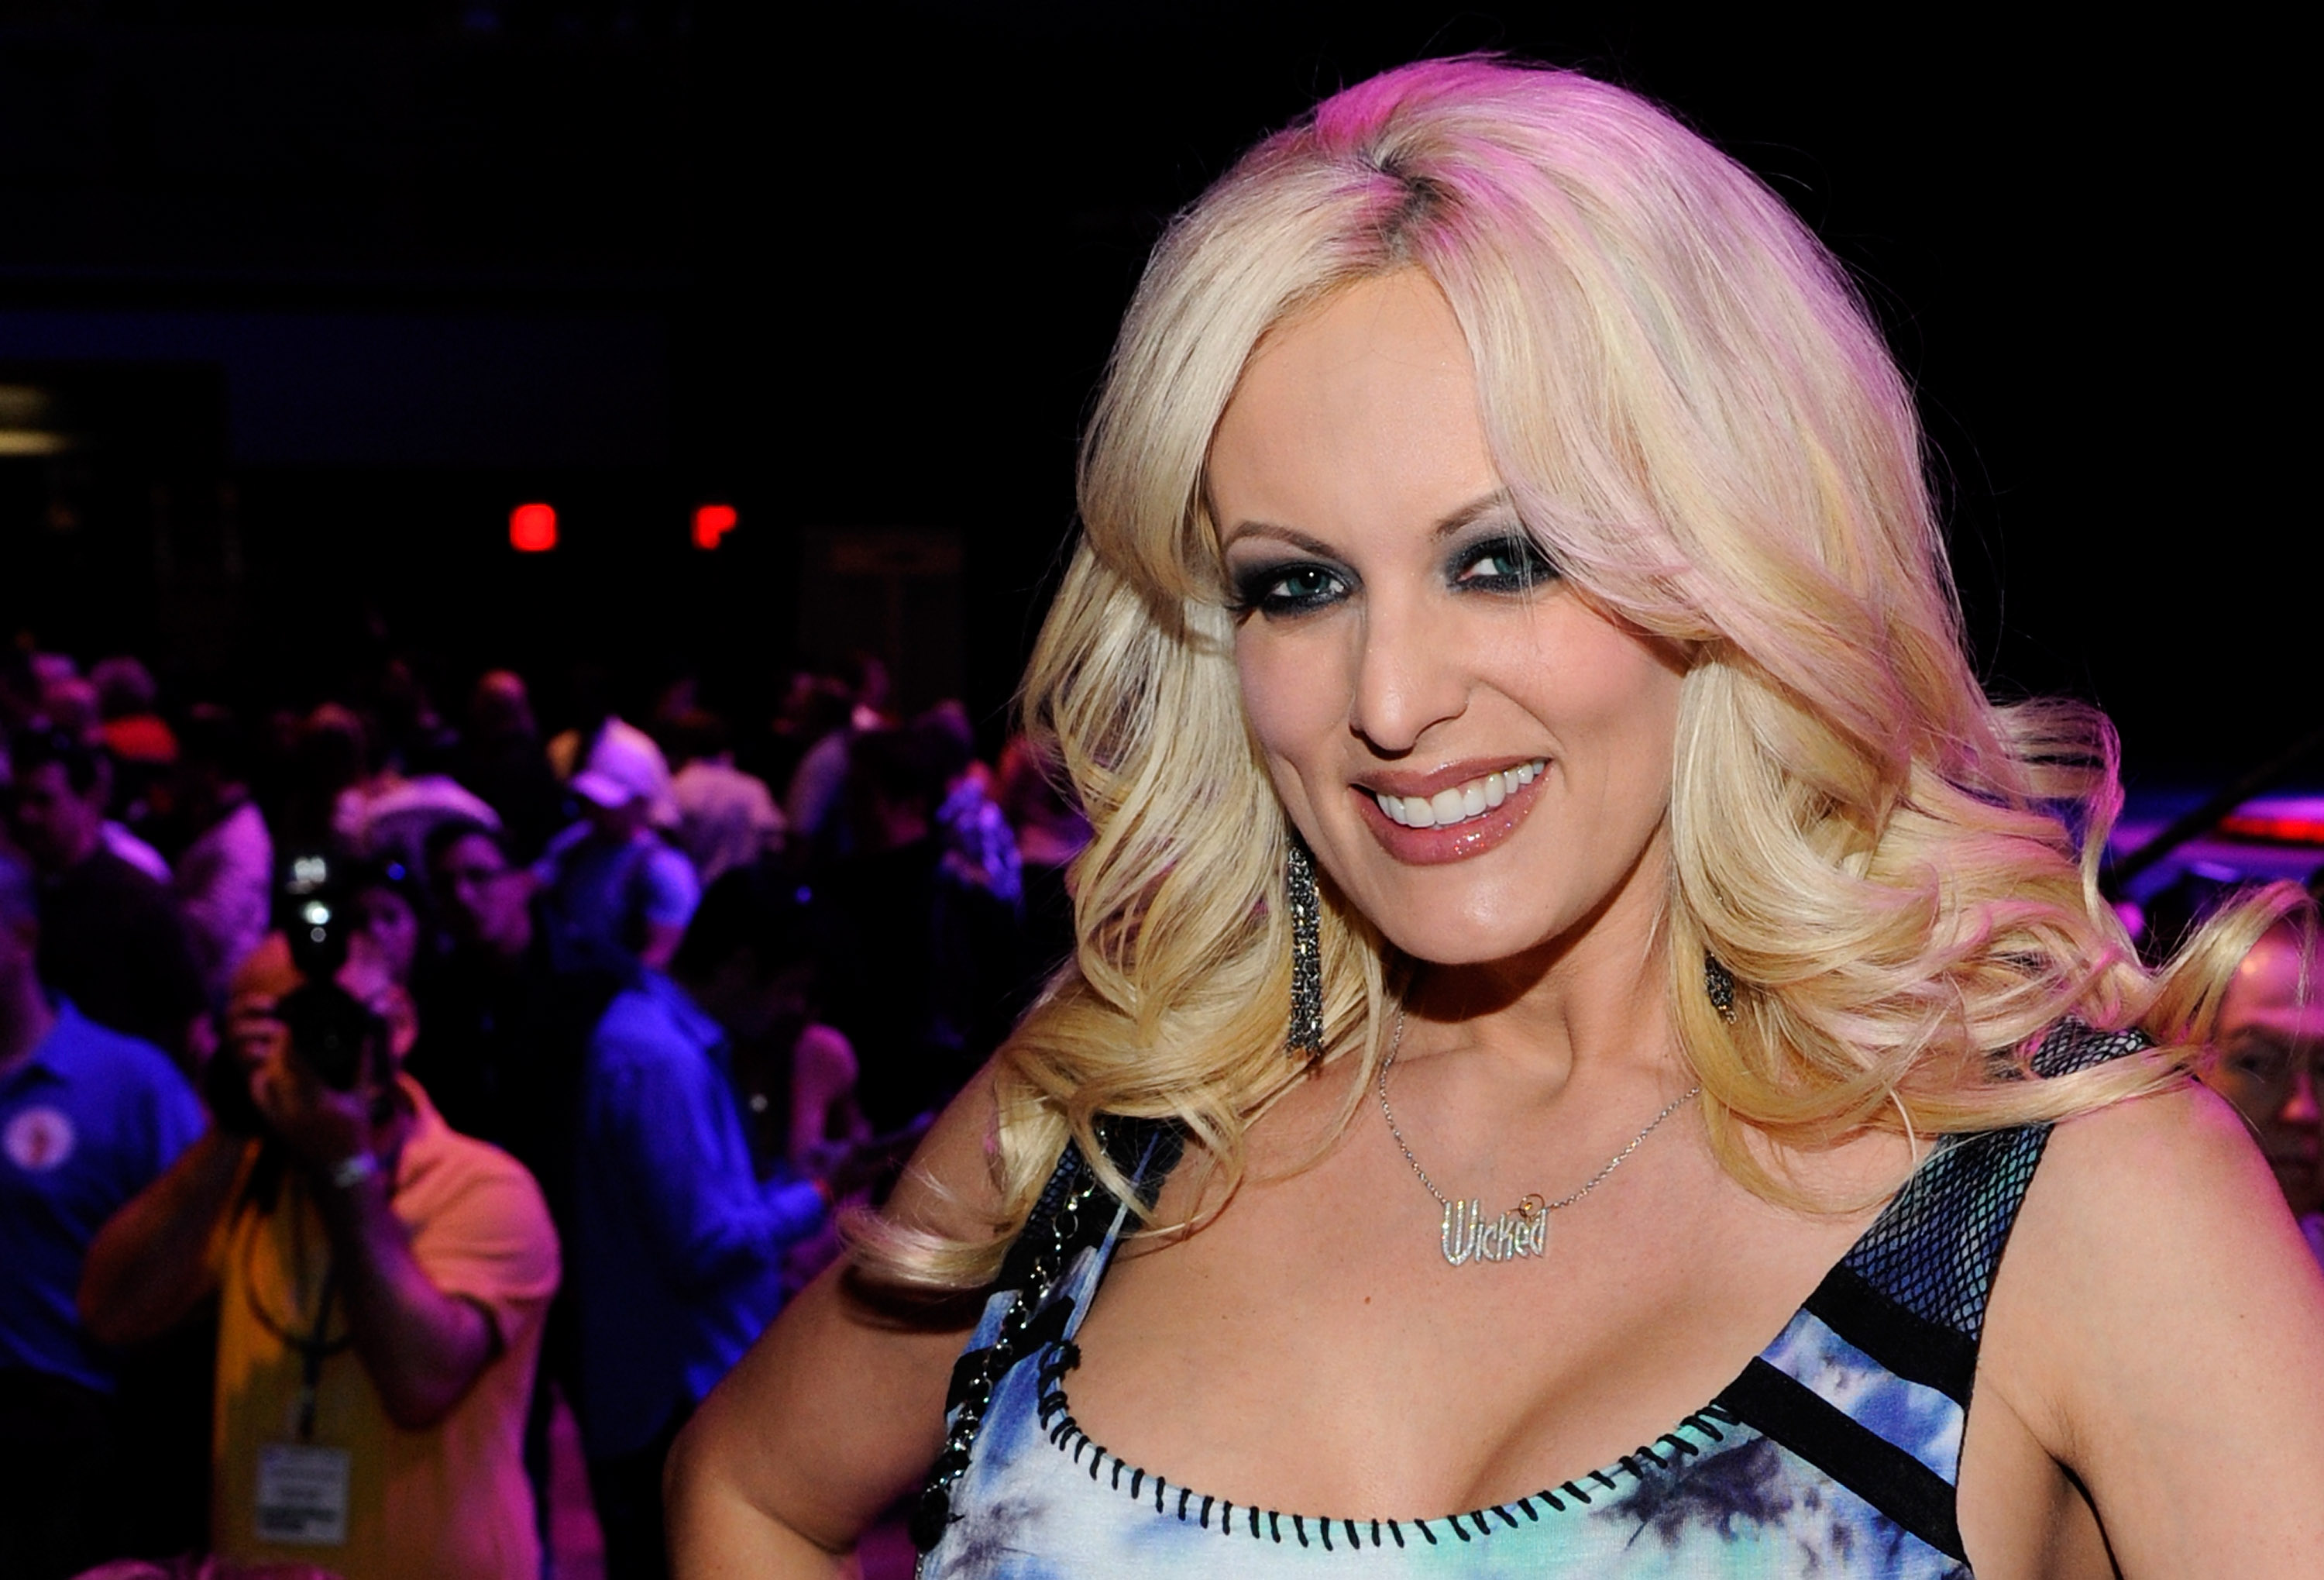 at the 2012 AVN Adult Entertainment Expo at the Hard Rock Hotel & Casino January 20, 2012 in Las Vegas, Nevada.